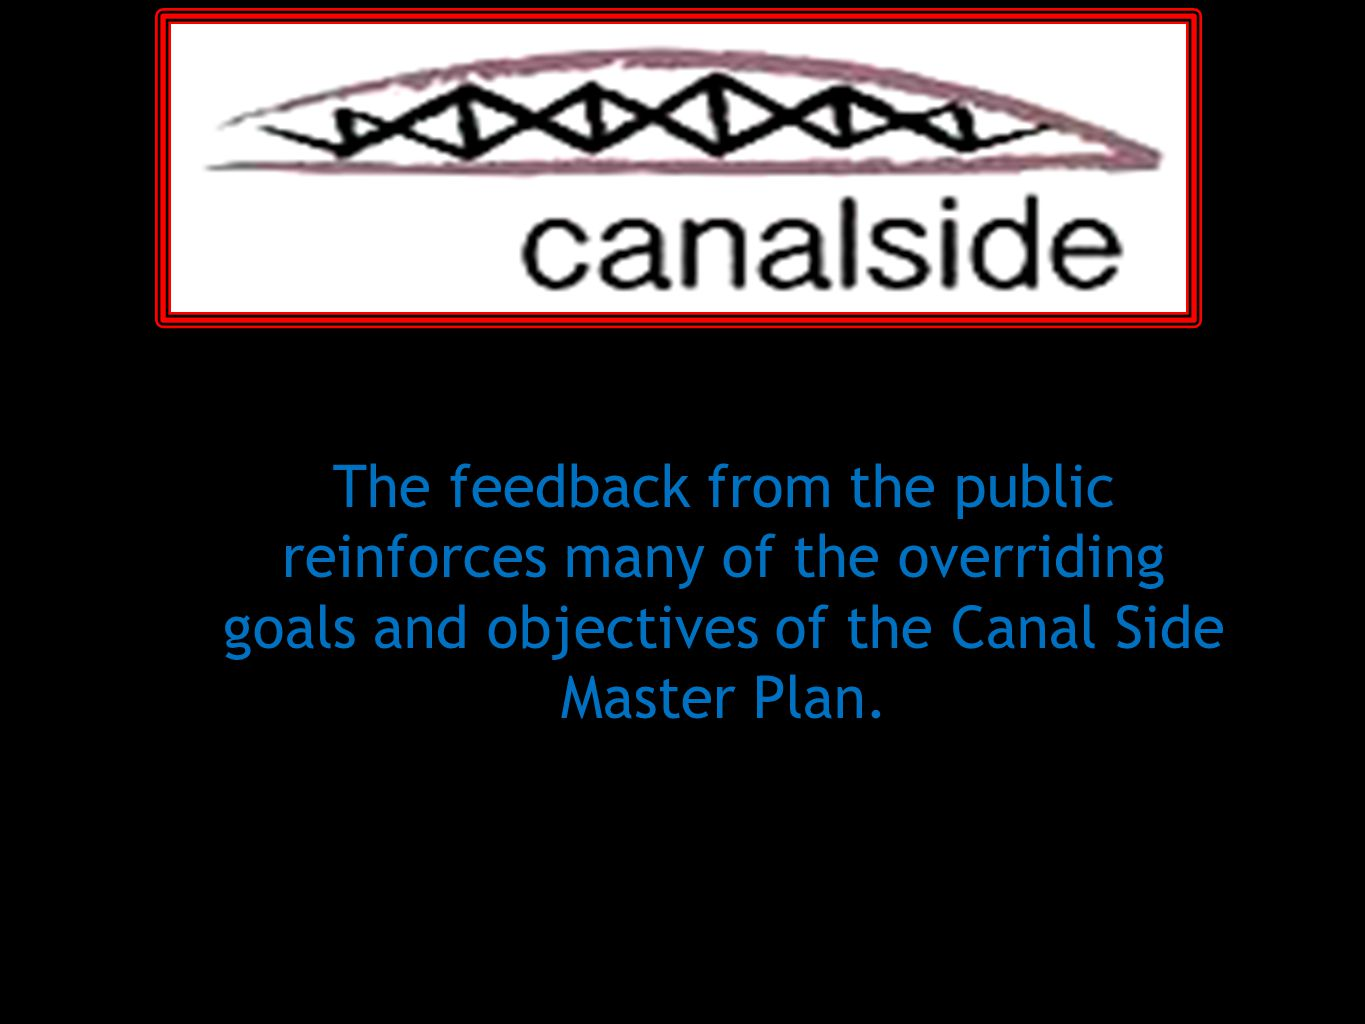 The feedback from the public reinforces many of the overriding goals and objectives of the Canal Side Master Plan.